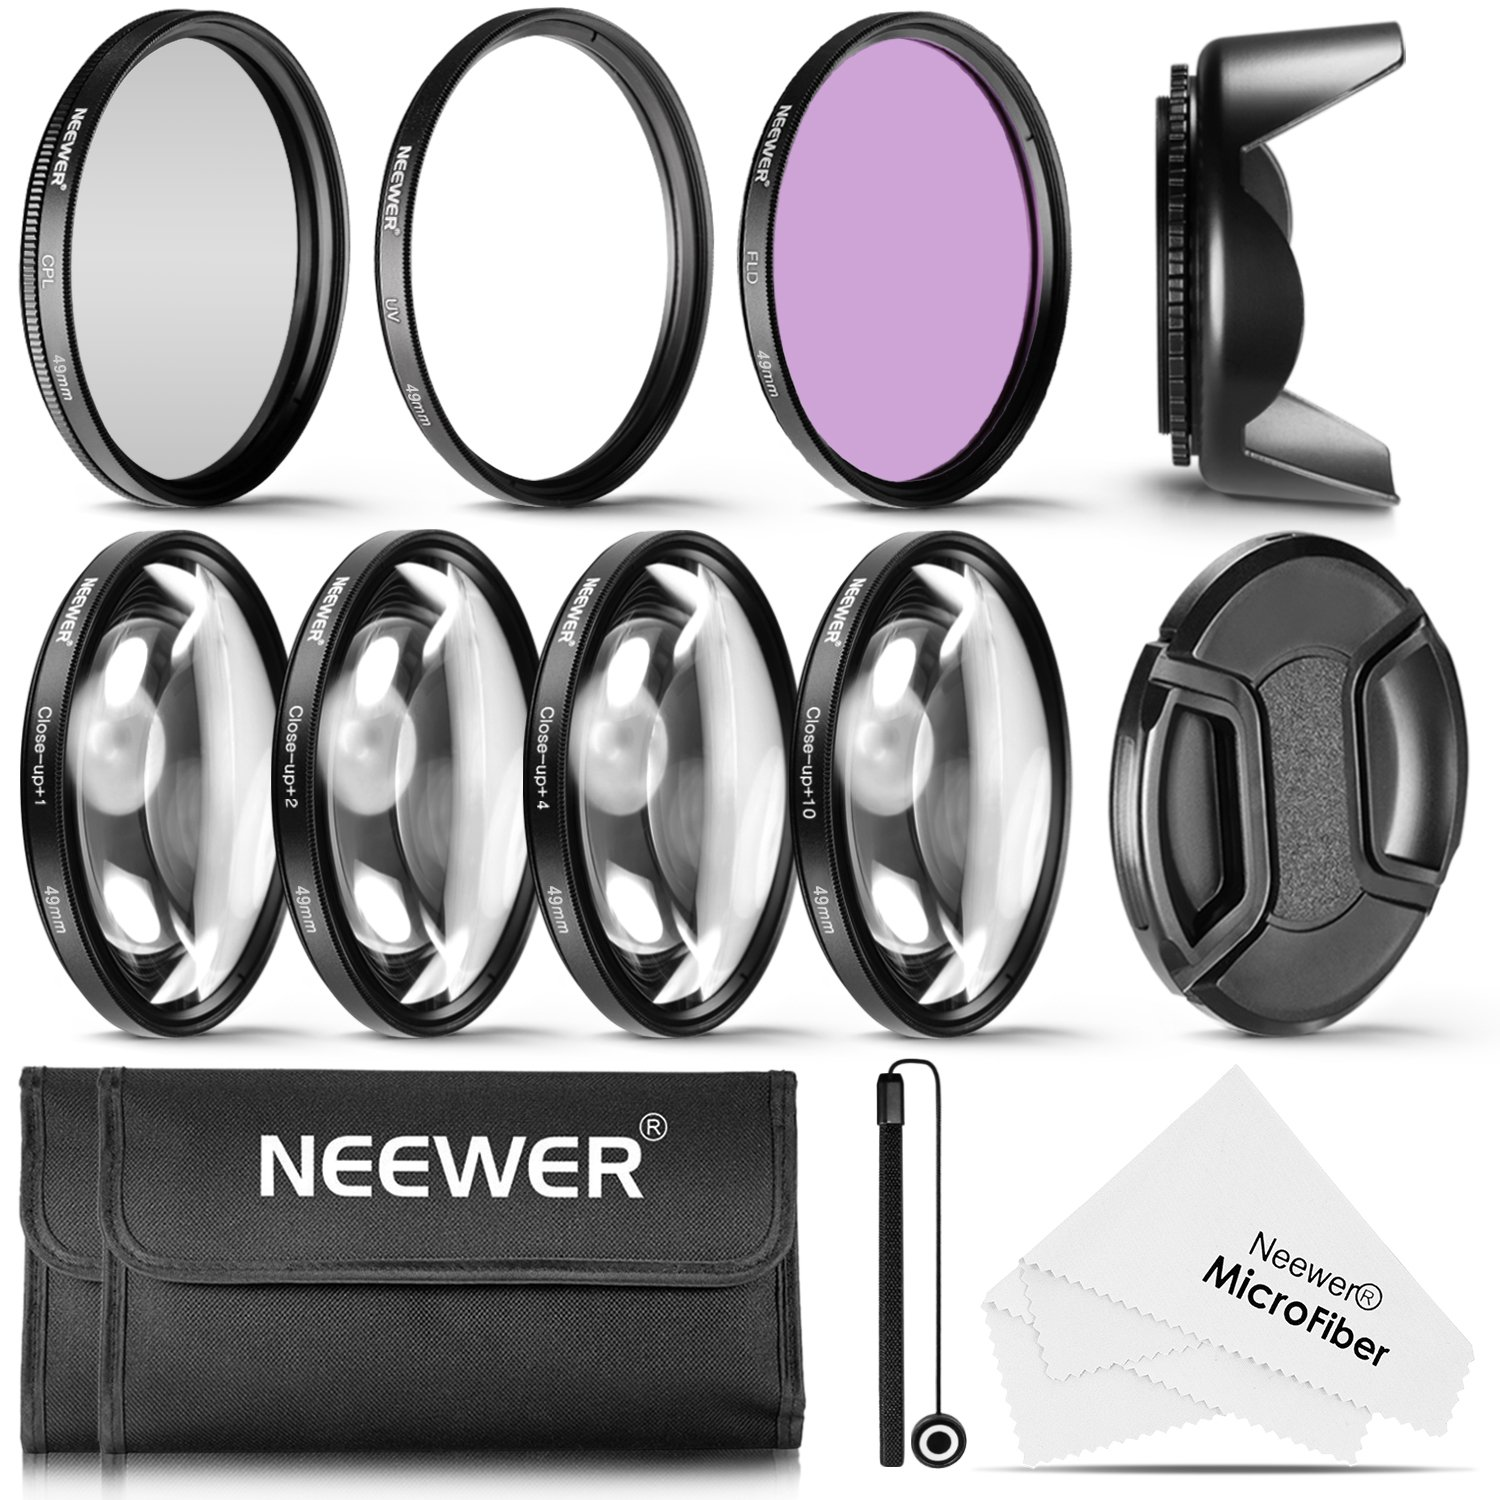 Neewer 49MM Professional UV CPL FLD Lens Filter and Close-up (+1, +2, +4, +10) Accessory Kit for Lenses with a 49mm Filter Size